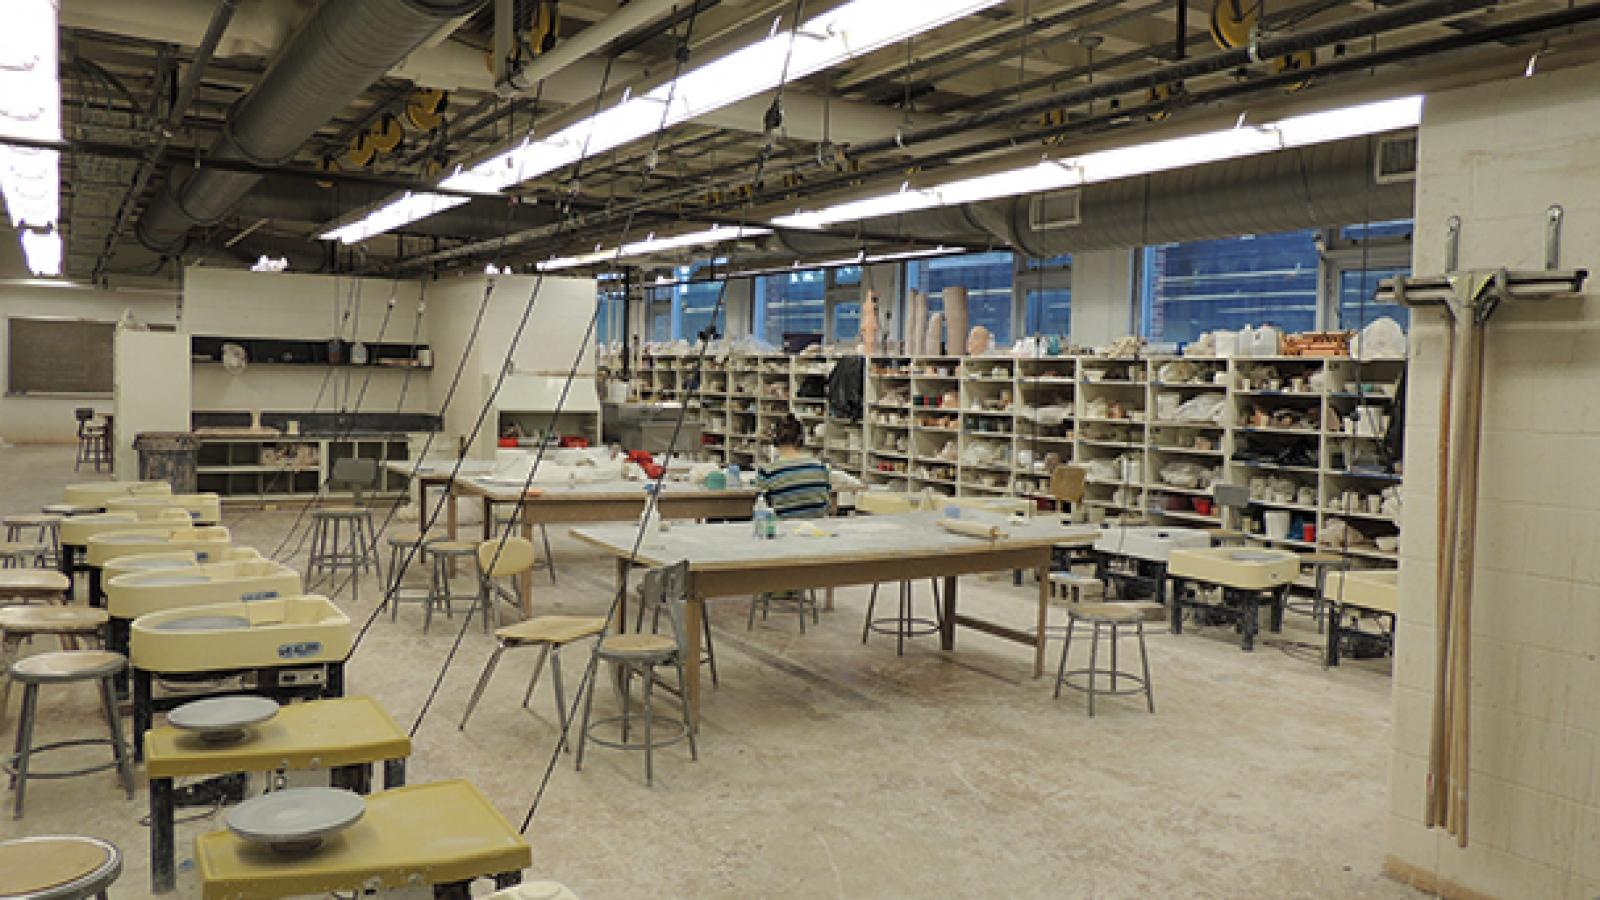 Ceramics studio and classroom